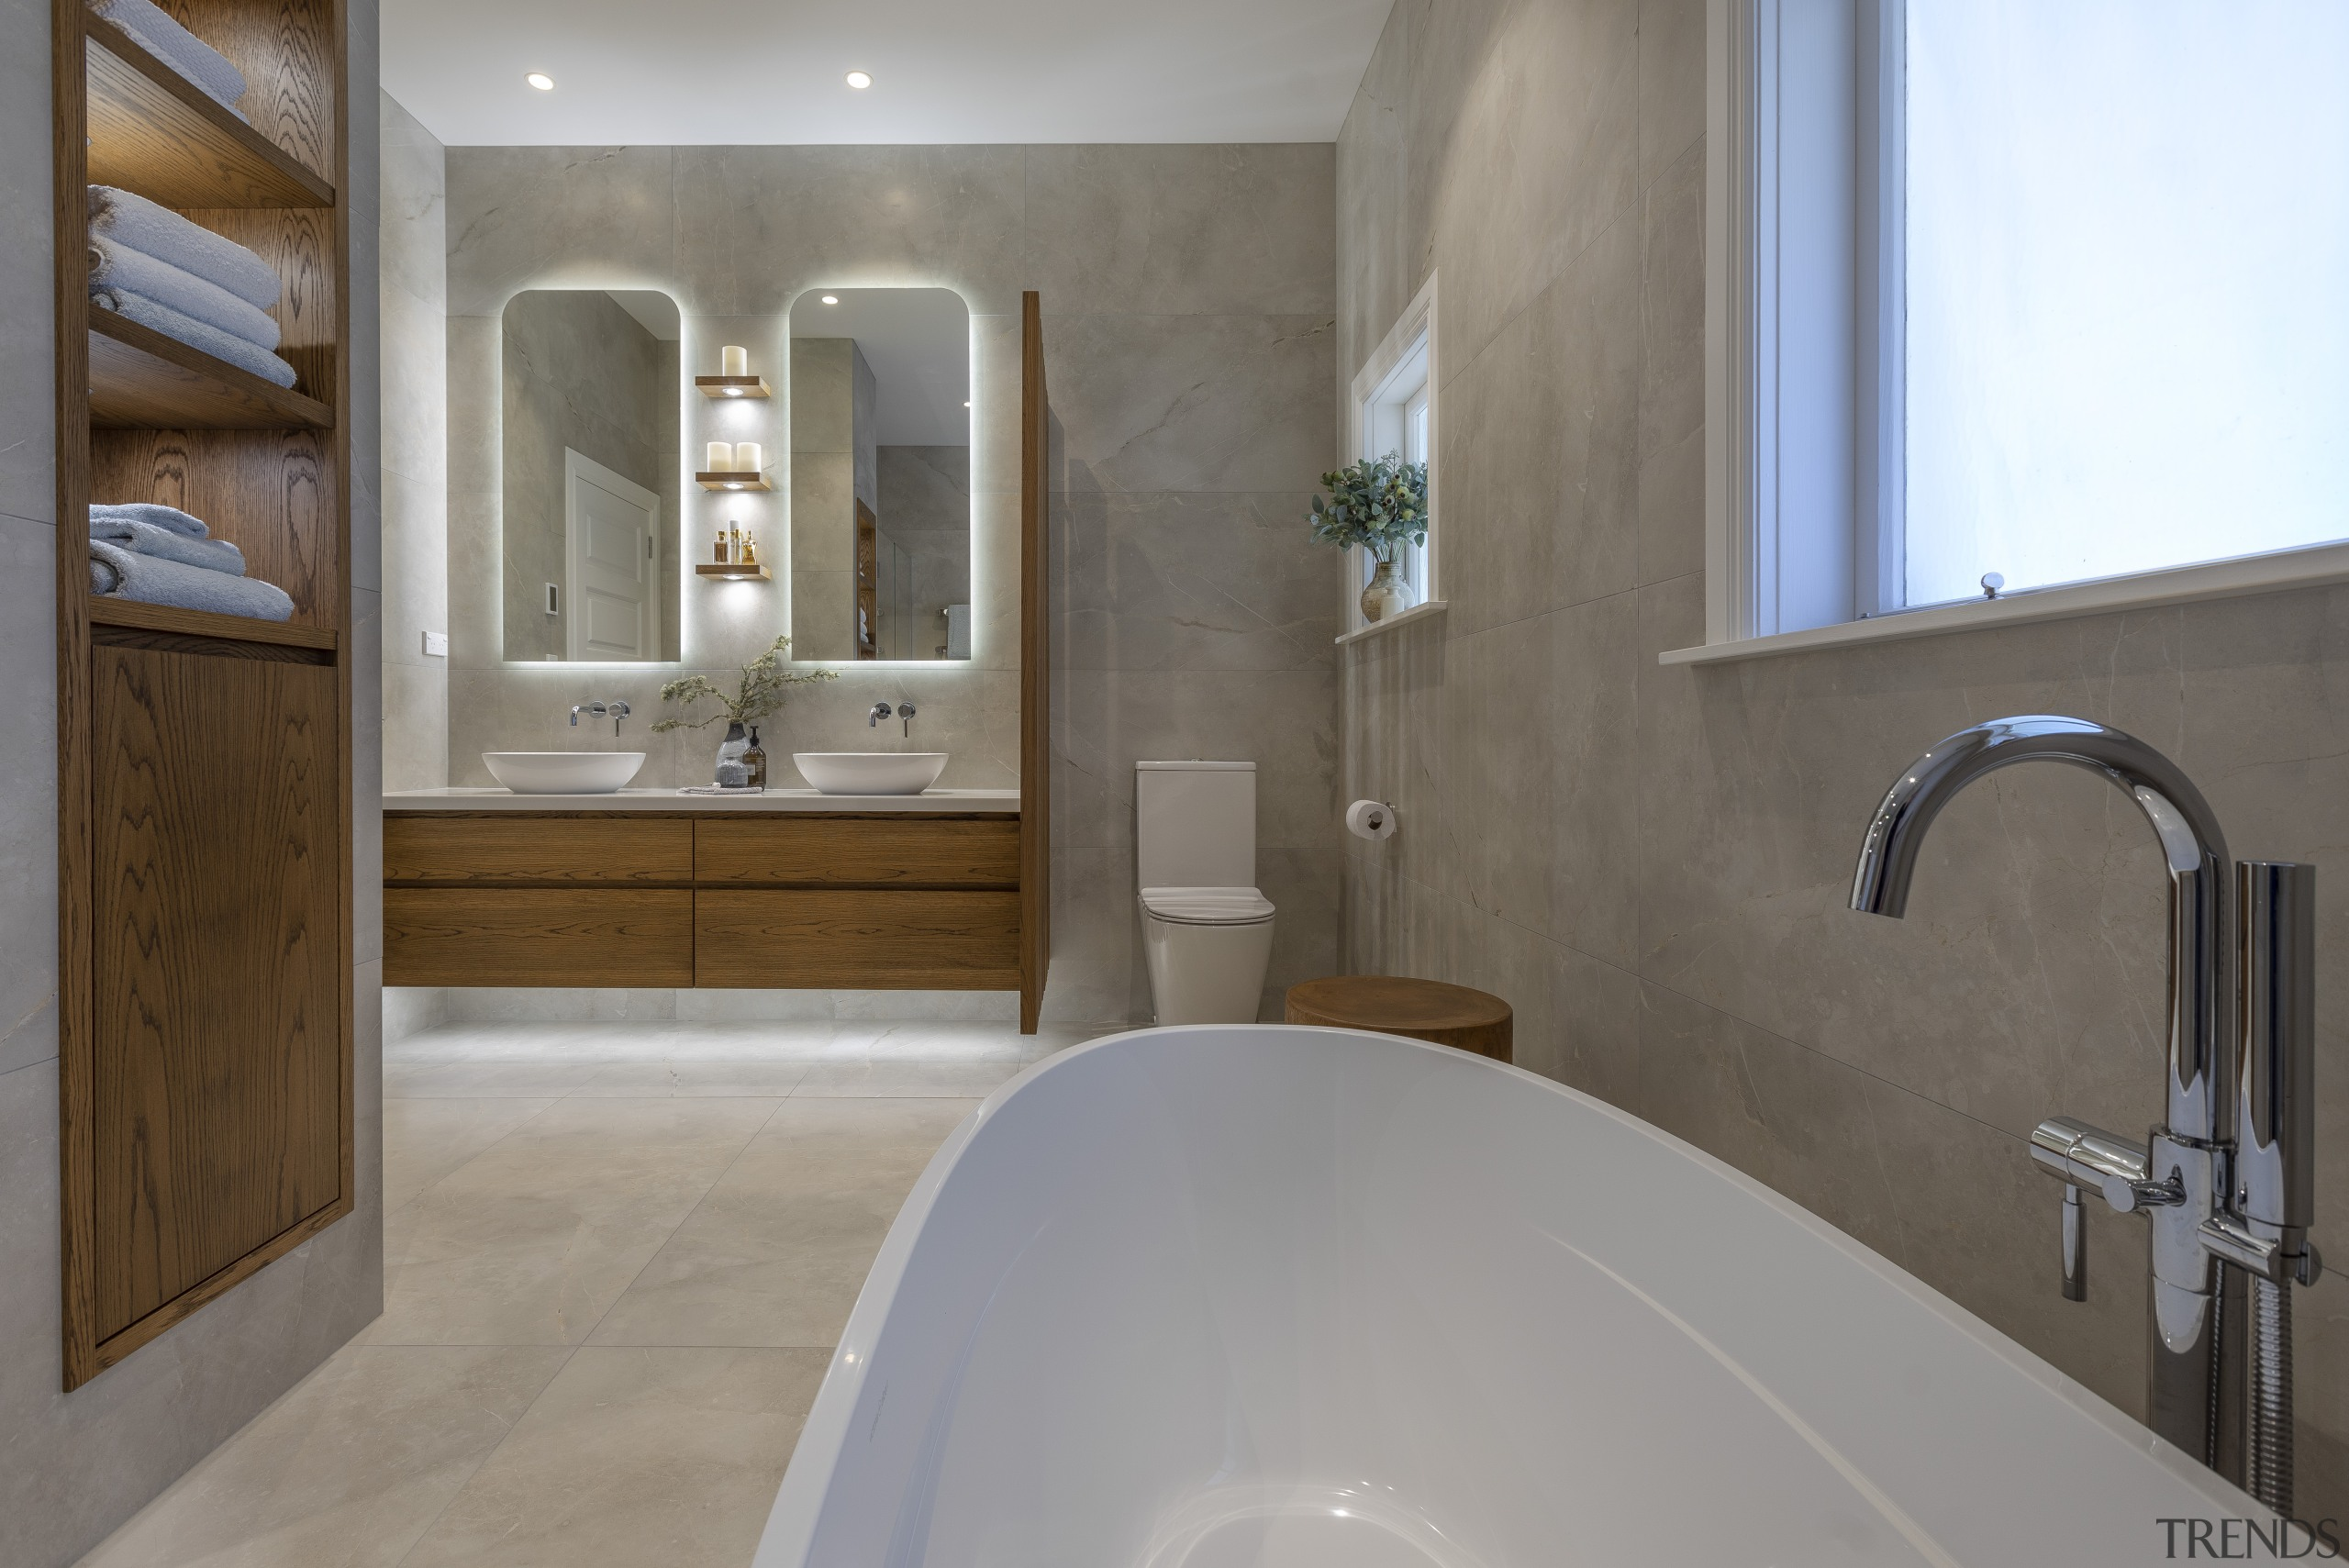 Stretch out and relax – a curvaceous tub gray